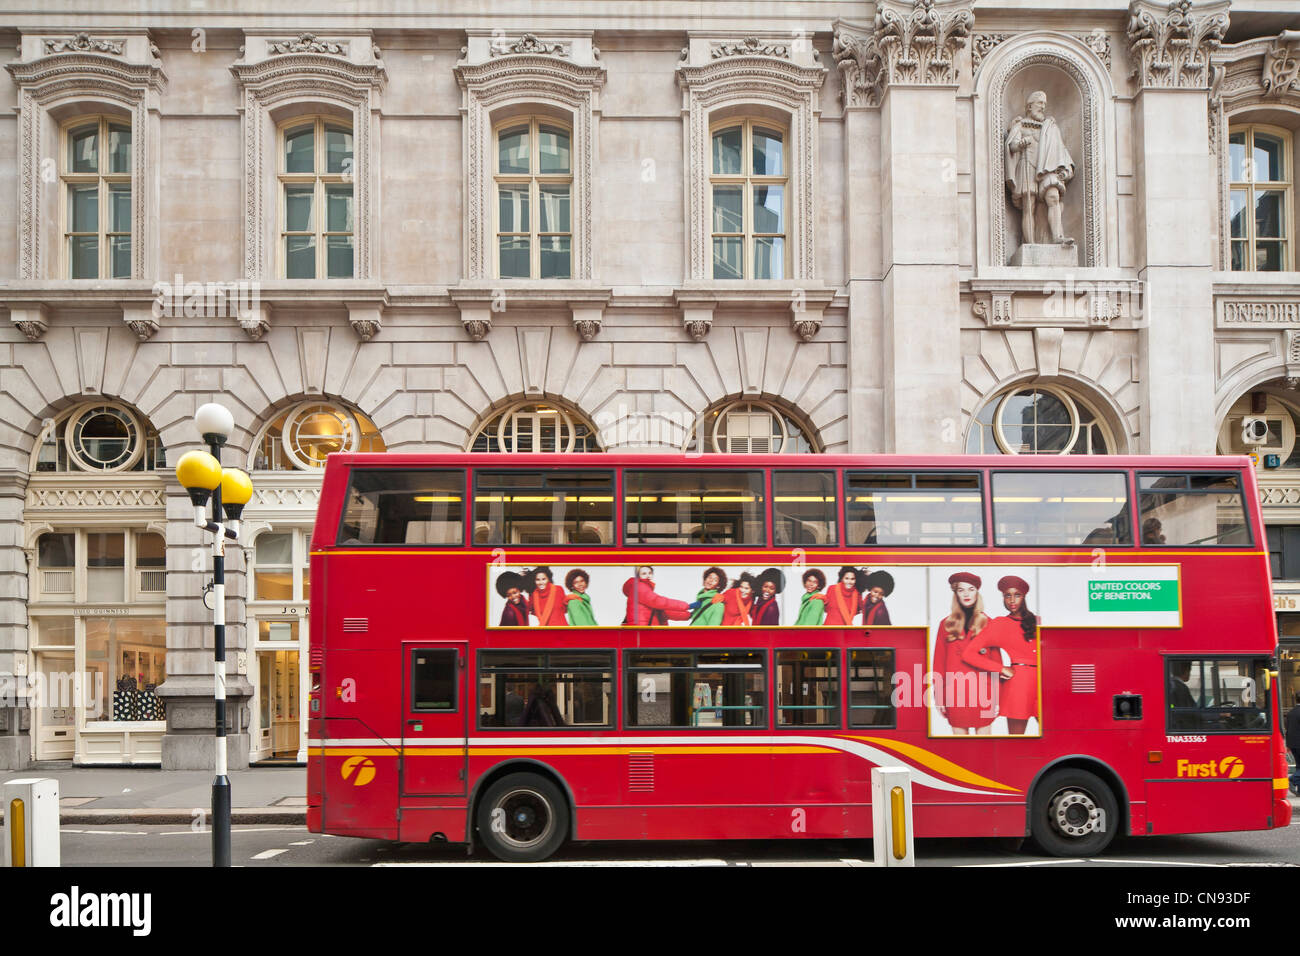 United Kingdom, London, City, Royal Exchange, former stock exchange, built by architect Sir William Tite, and inaugurated - Stock Image